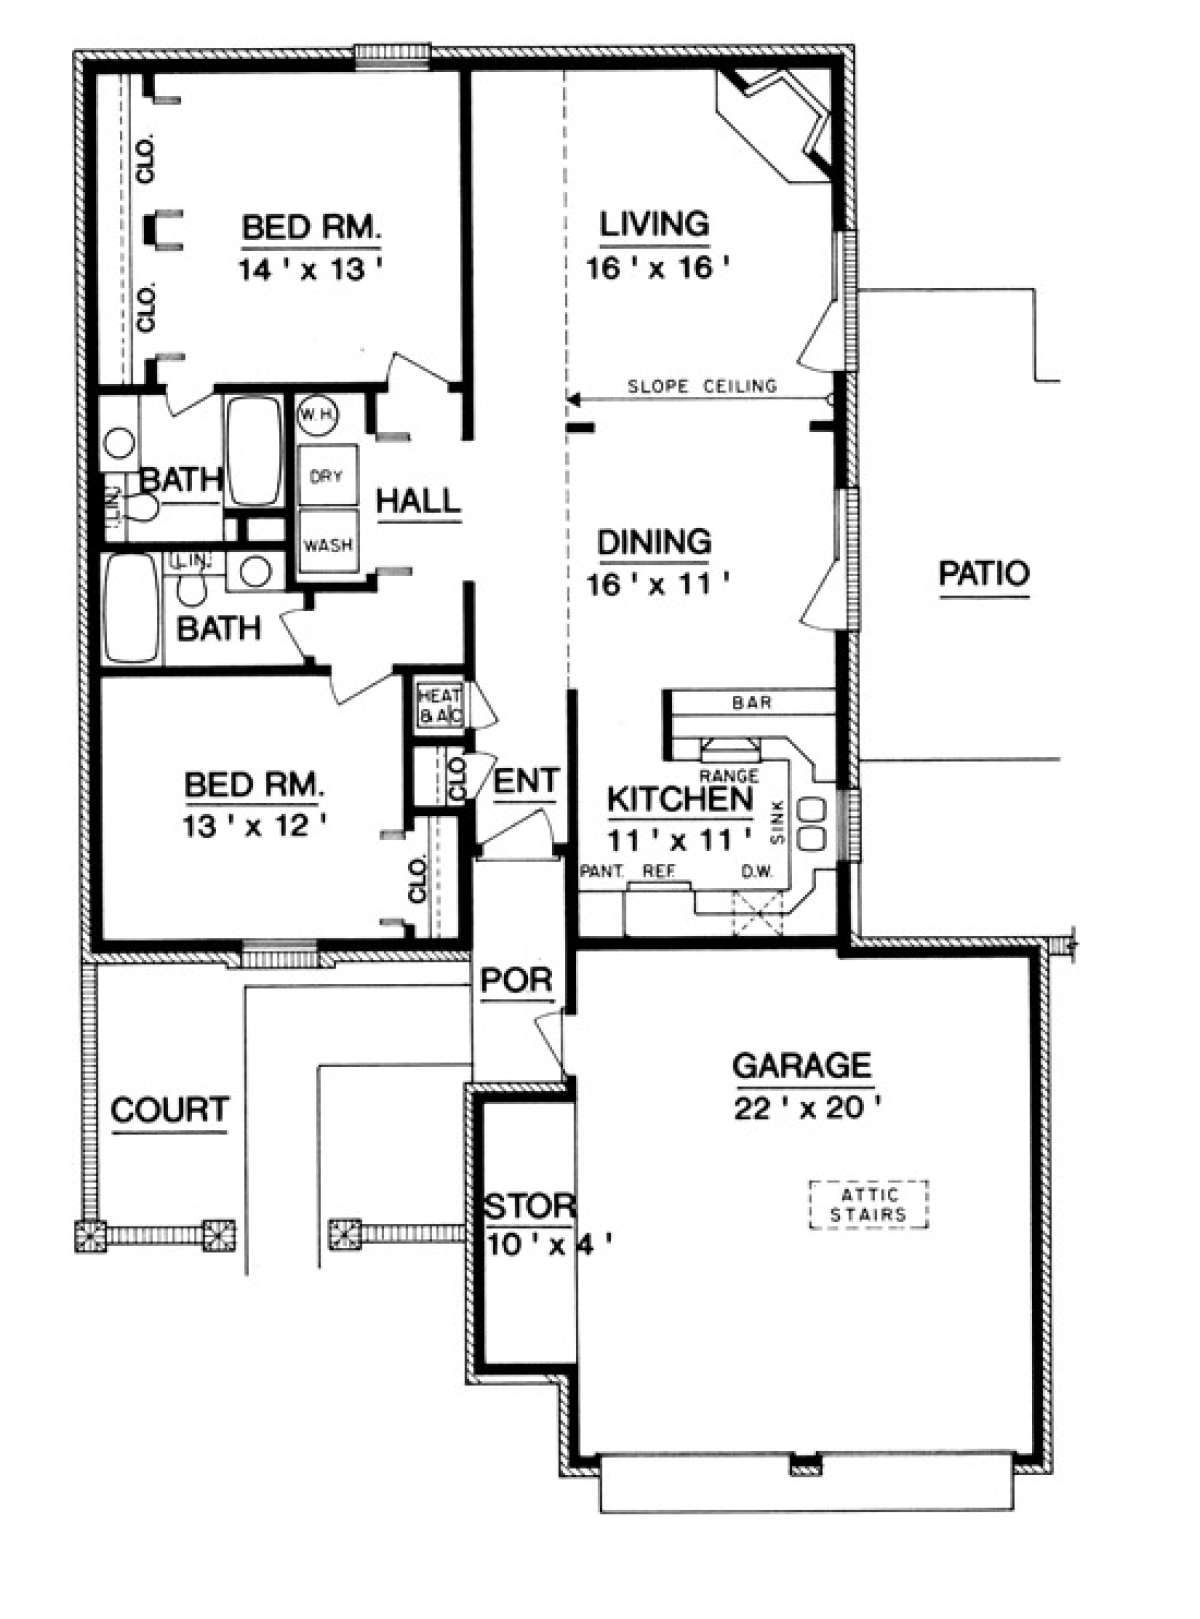 House Plan 048 00233 European Plan 1 200 Square Feet 2 Bedrooms 2 Bathrooms In 2021 Ranch House Plans House Plans Floor Plan Design